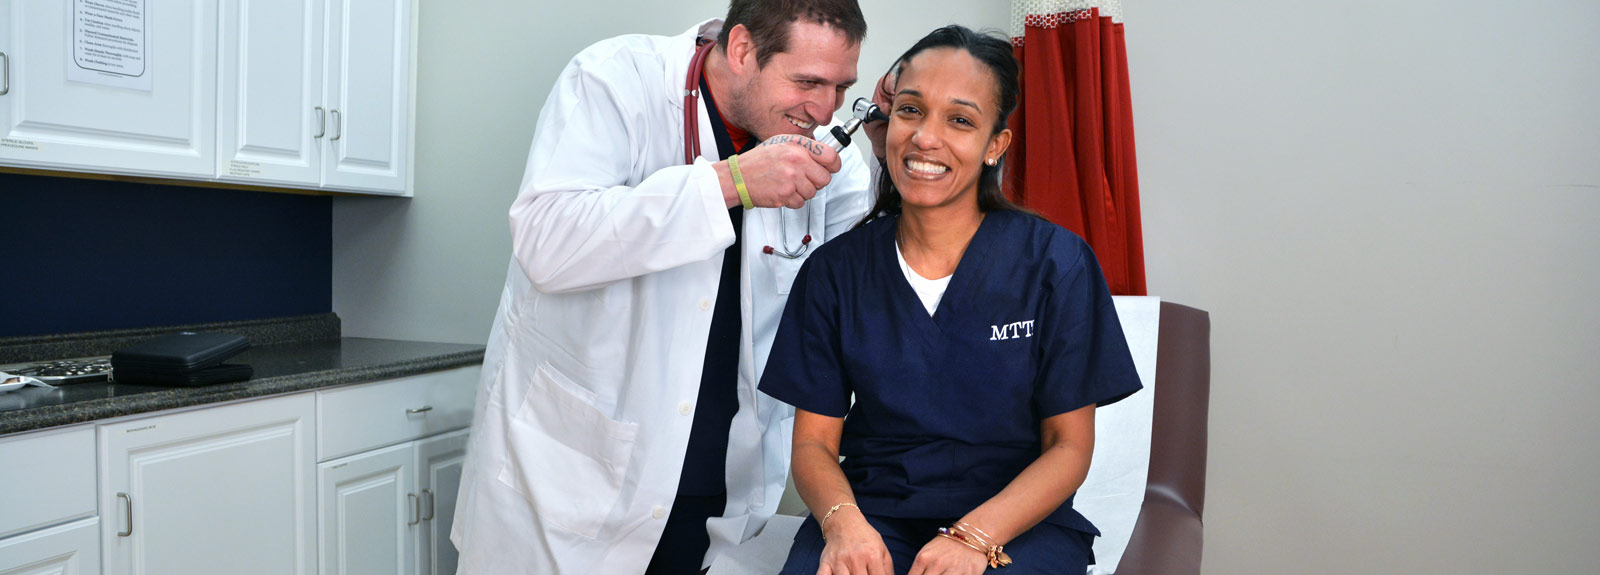 Medical Assistant Student Using An Otoscope To Examine Another Student's Ear